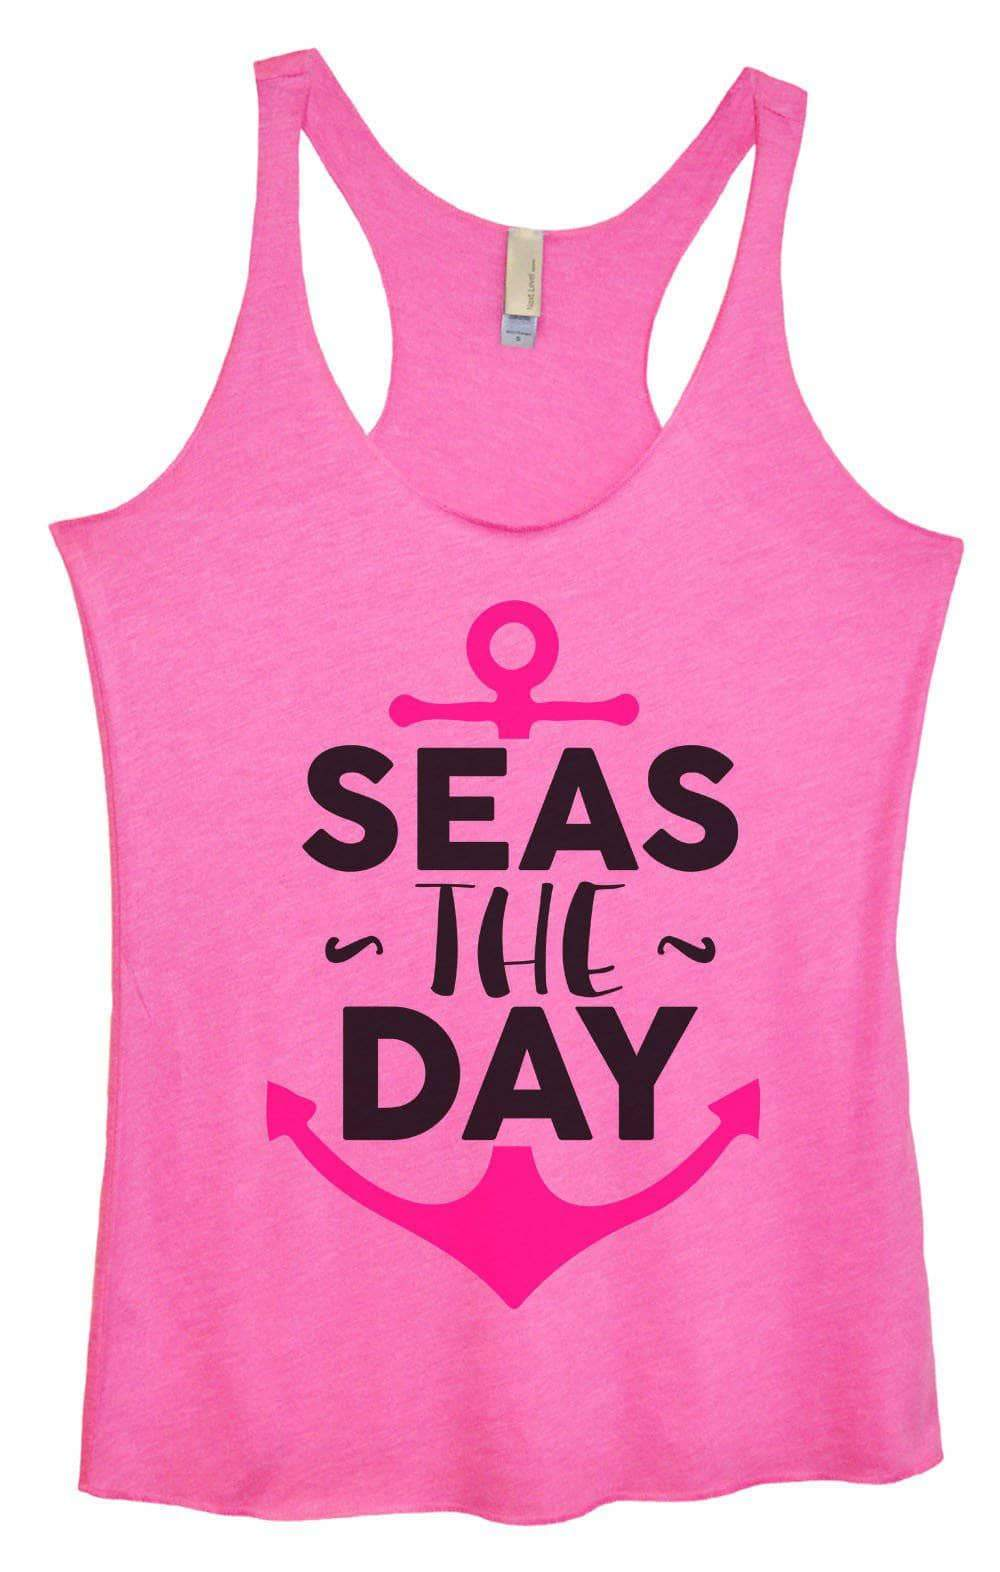 Womens Tri-Blend Tank Top - Seas The Day Small Womens Tank Tops Vintage Pink